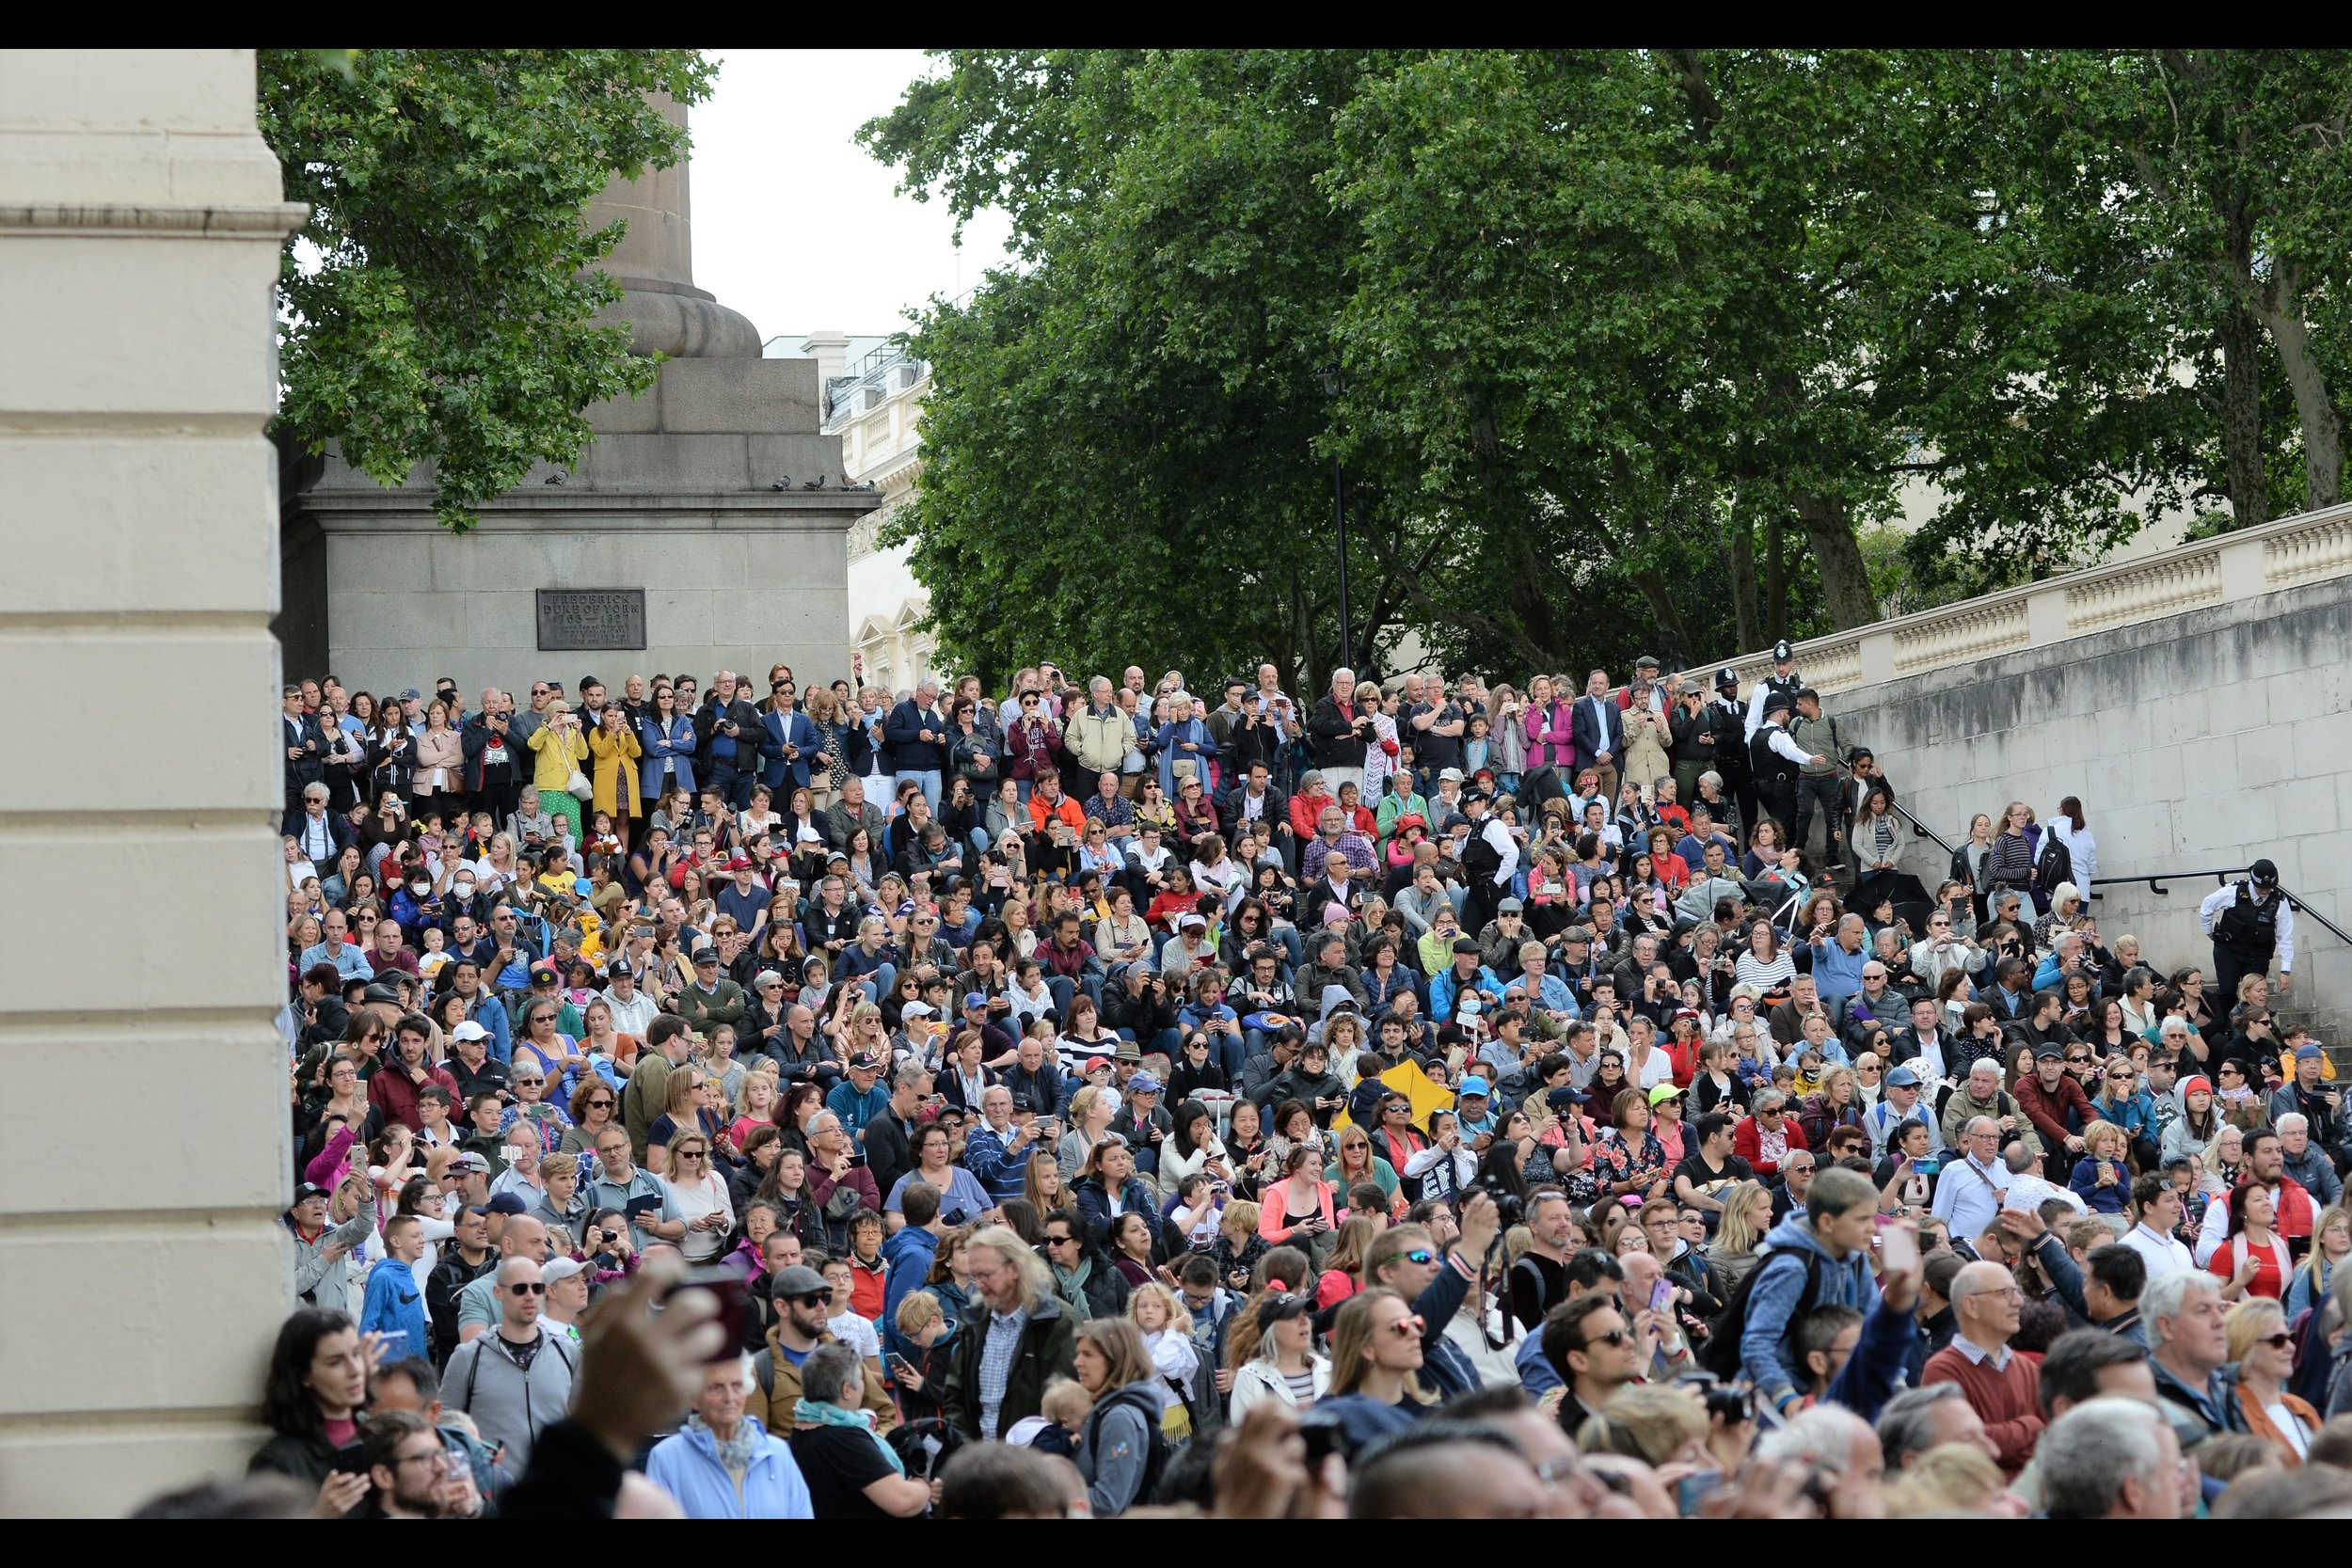 The crowd on the stairs is sadly missing That Guy from last year who had a giant banner that claimed Queen Elizabeth's coming was foretold by the Bible. (As opposed to the published programme for Trooping The Colour, which is available online)